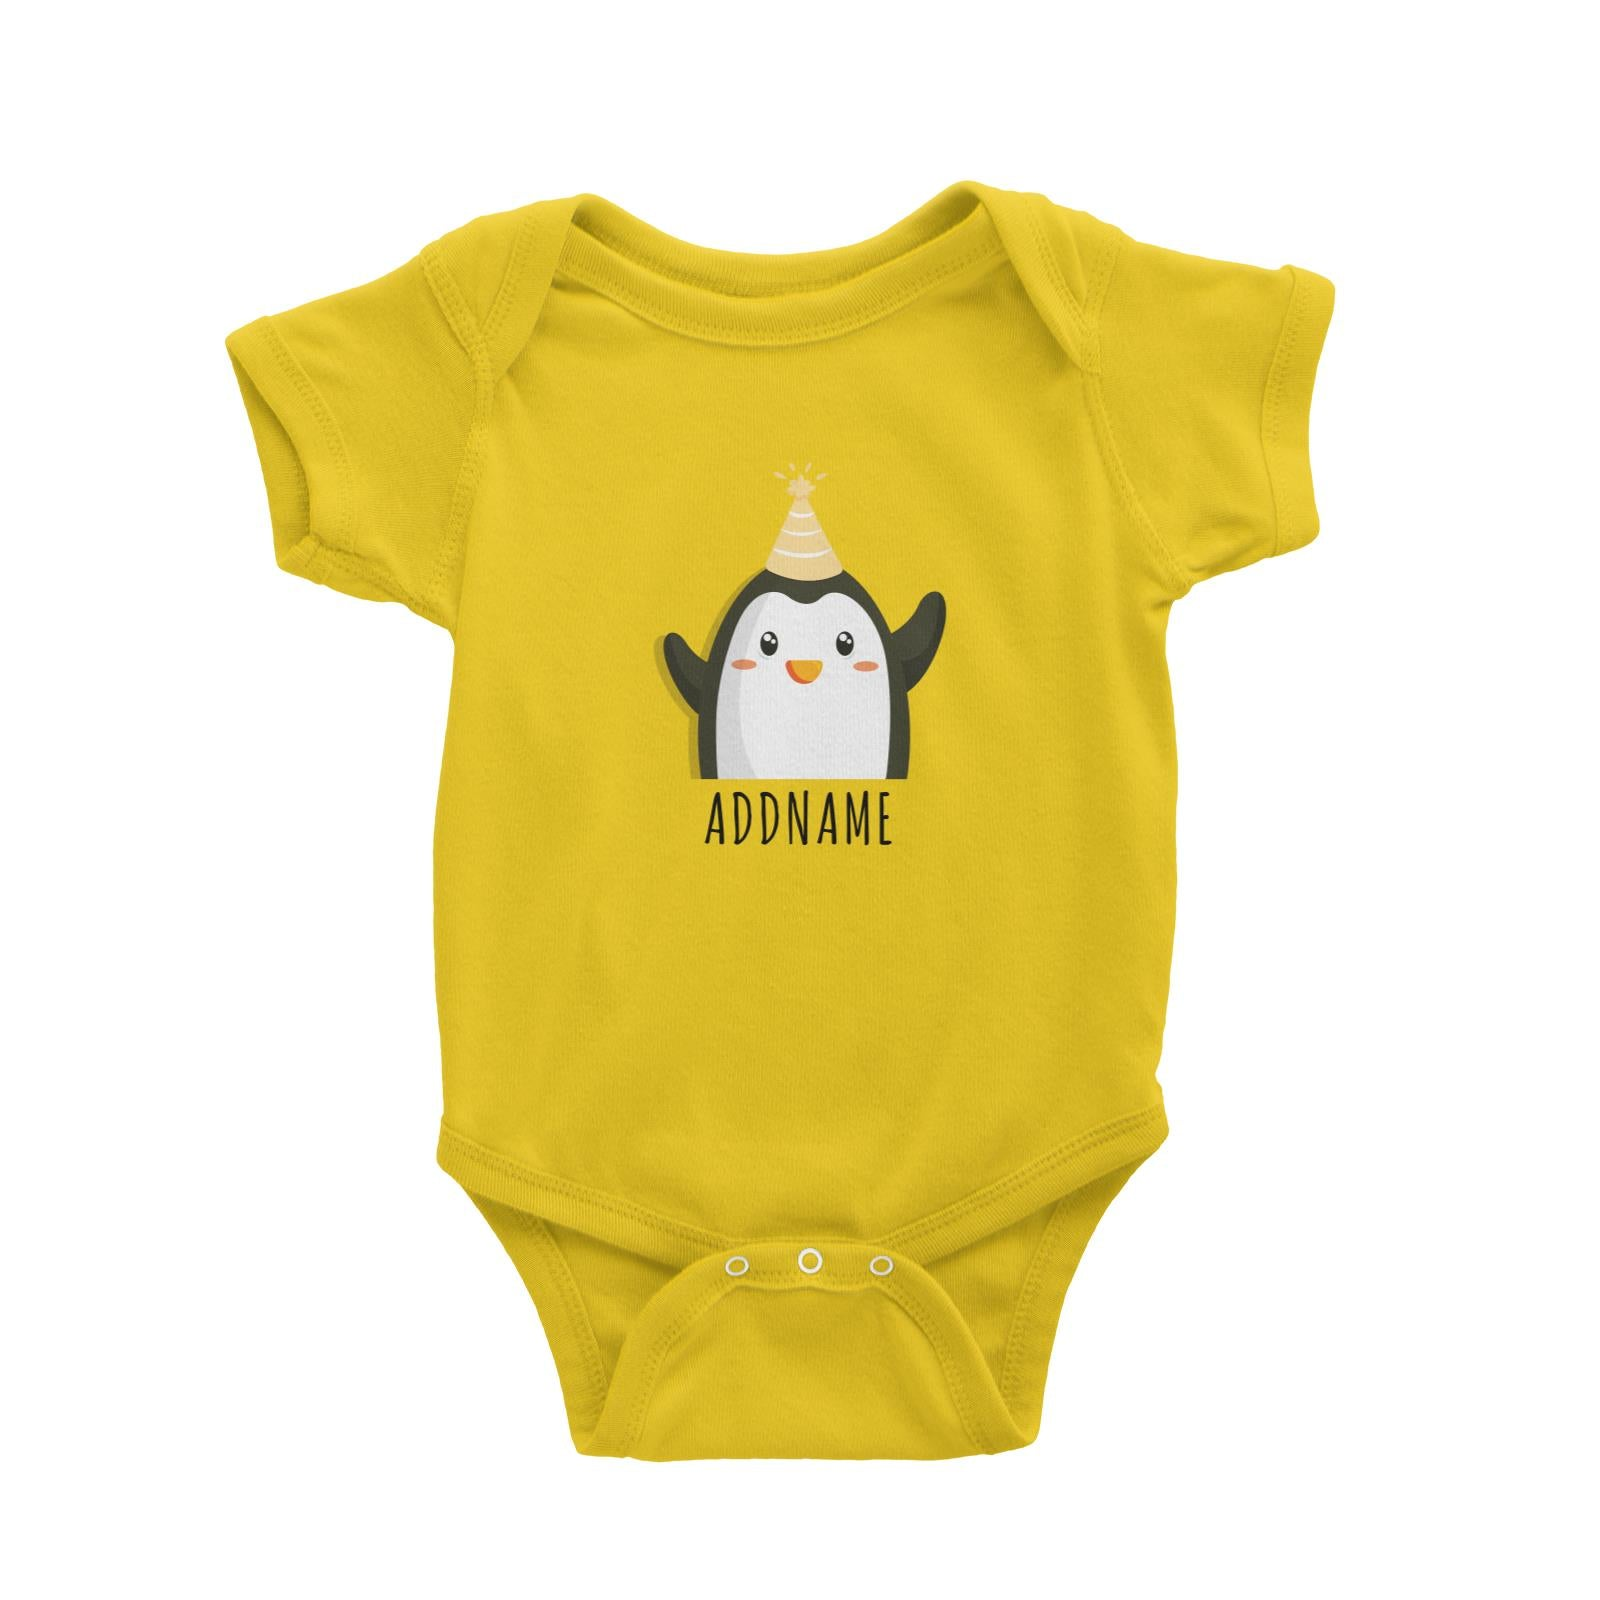 Birthday Cute Penguin Wearing Party Hat Addname Baby Romper